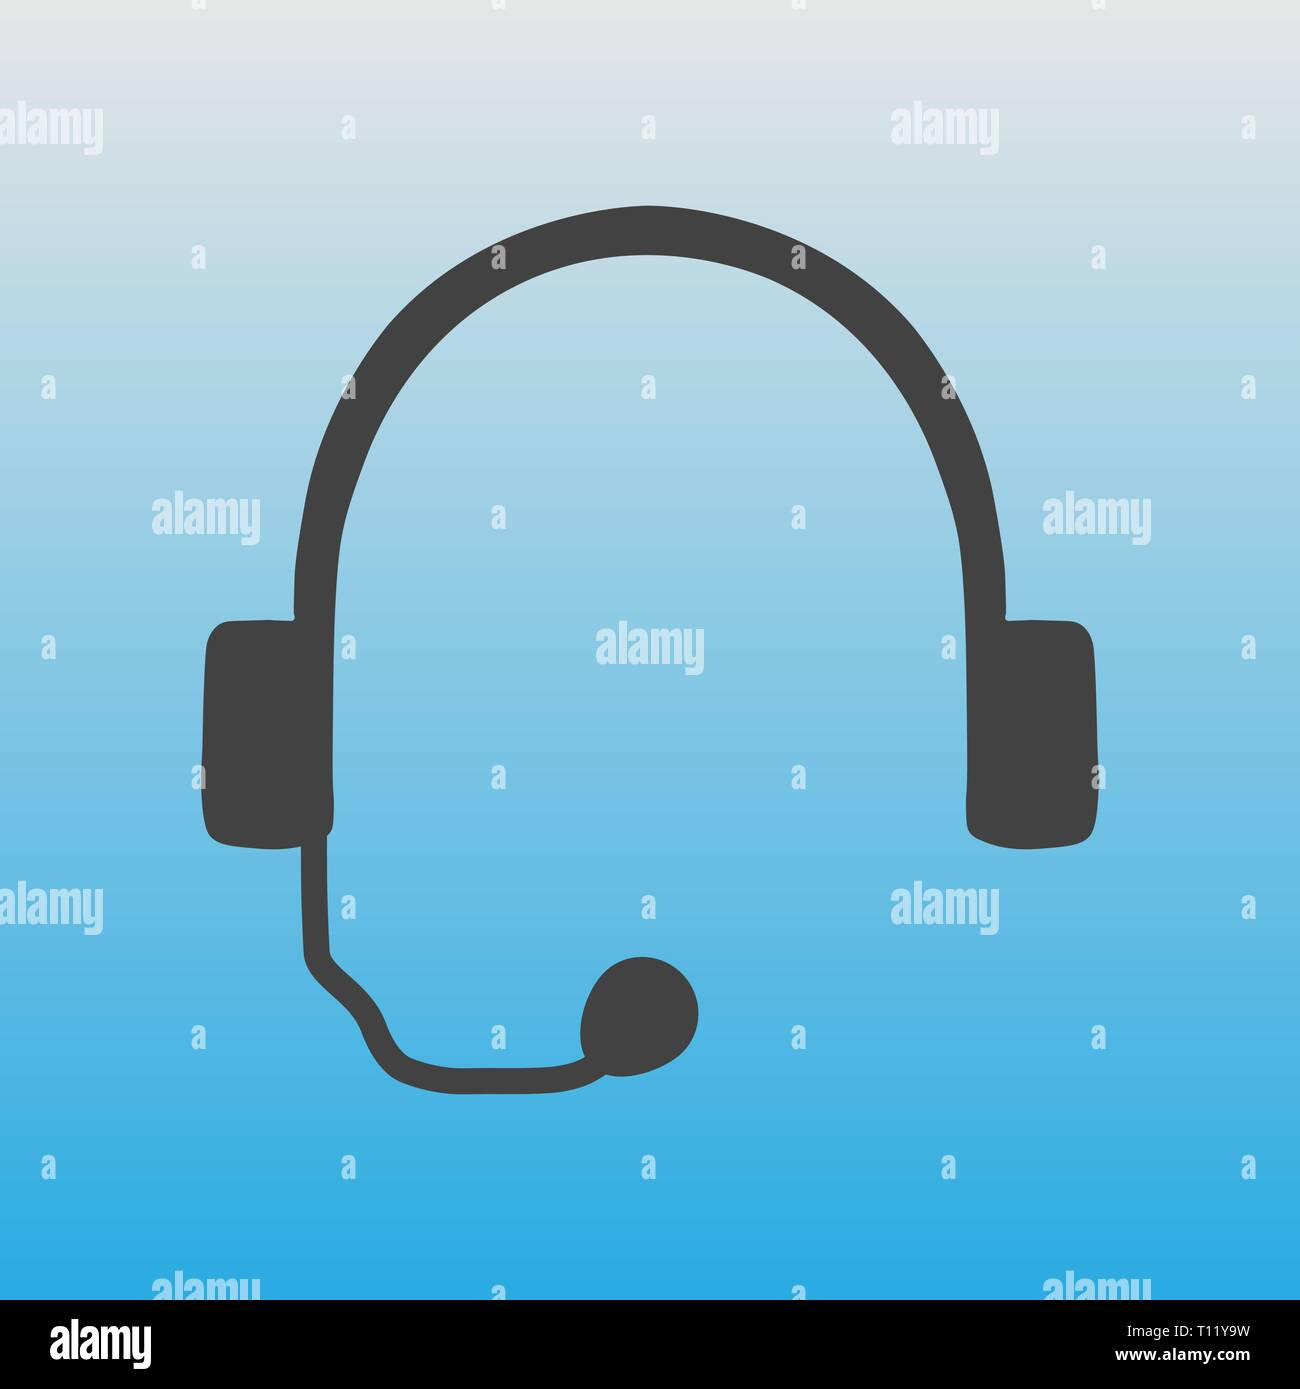 Icon Of Headphones On A Blue Background A Headset For Working With A Computer Telephone Communication Means Stock Vector Image Art Alamy